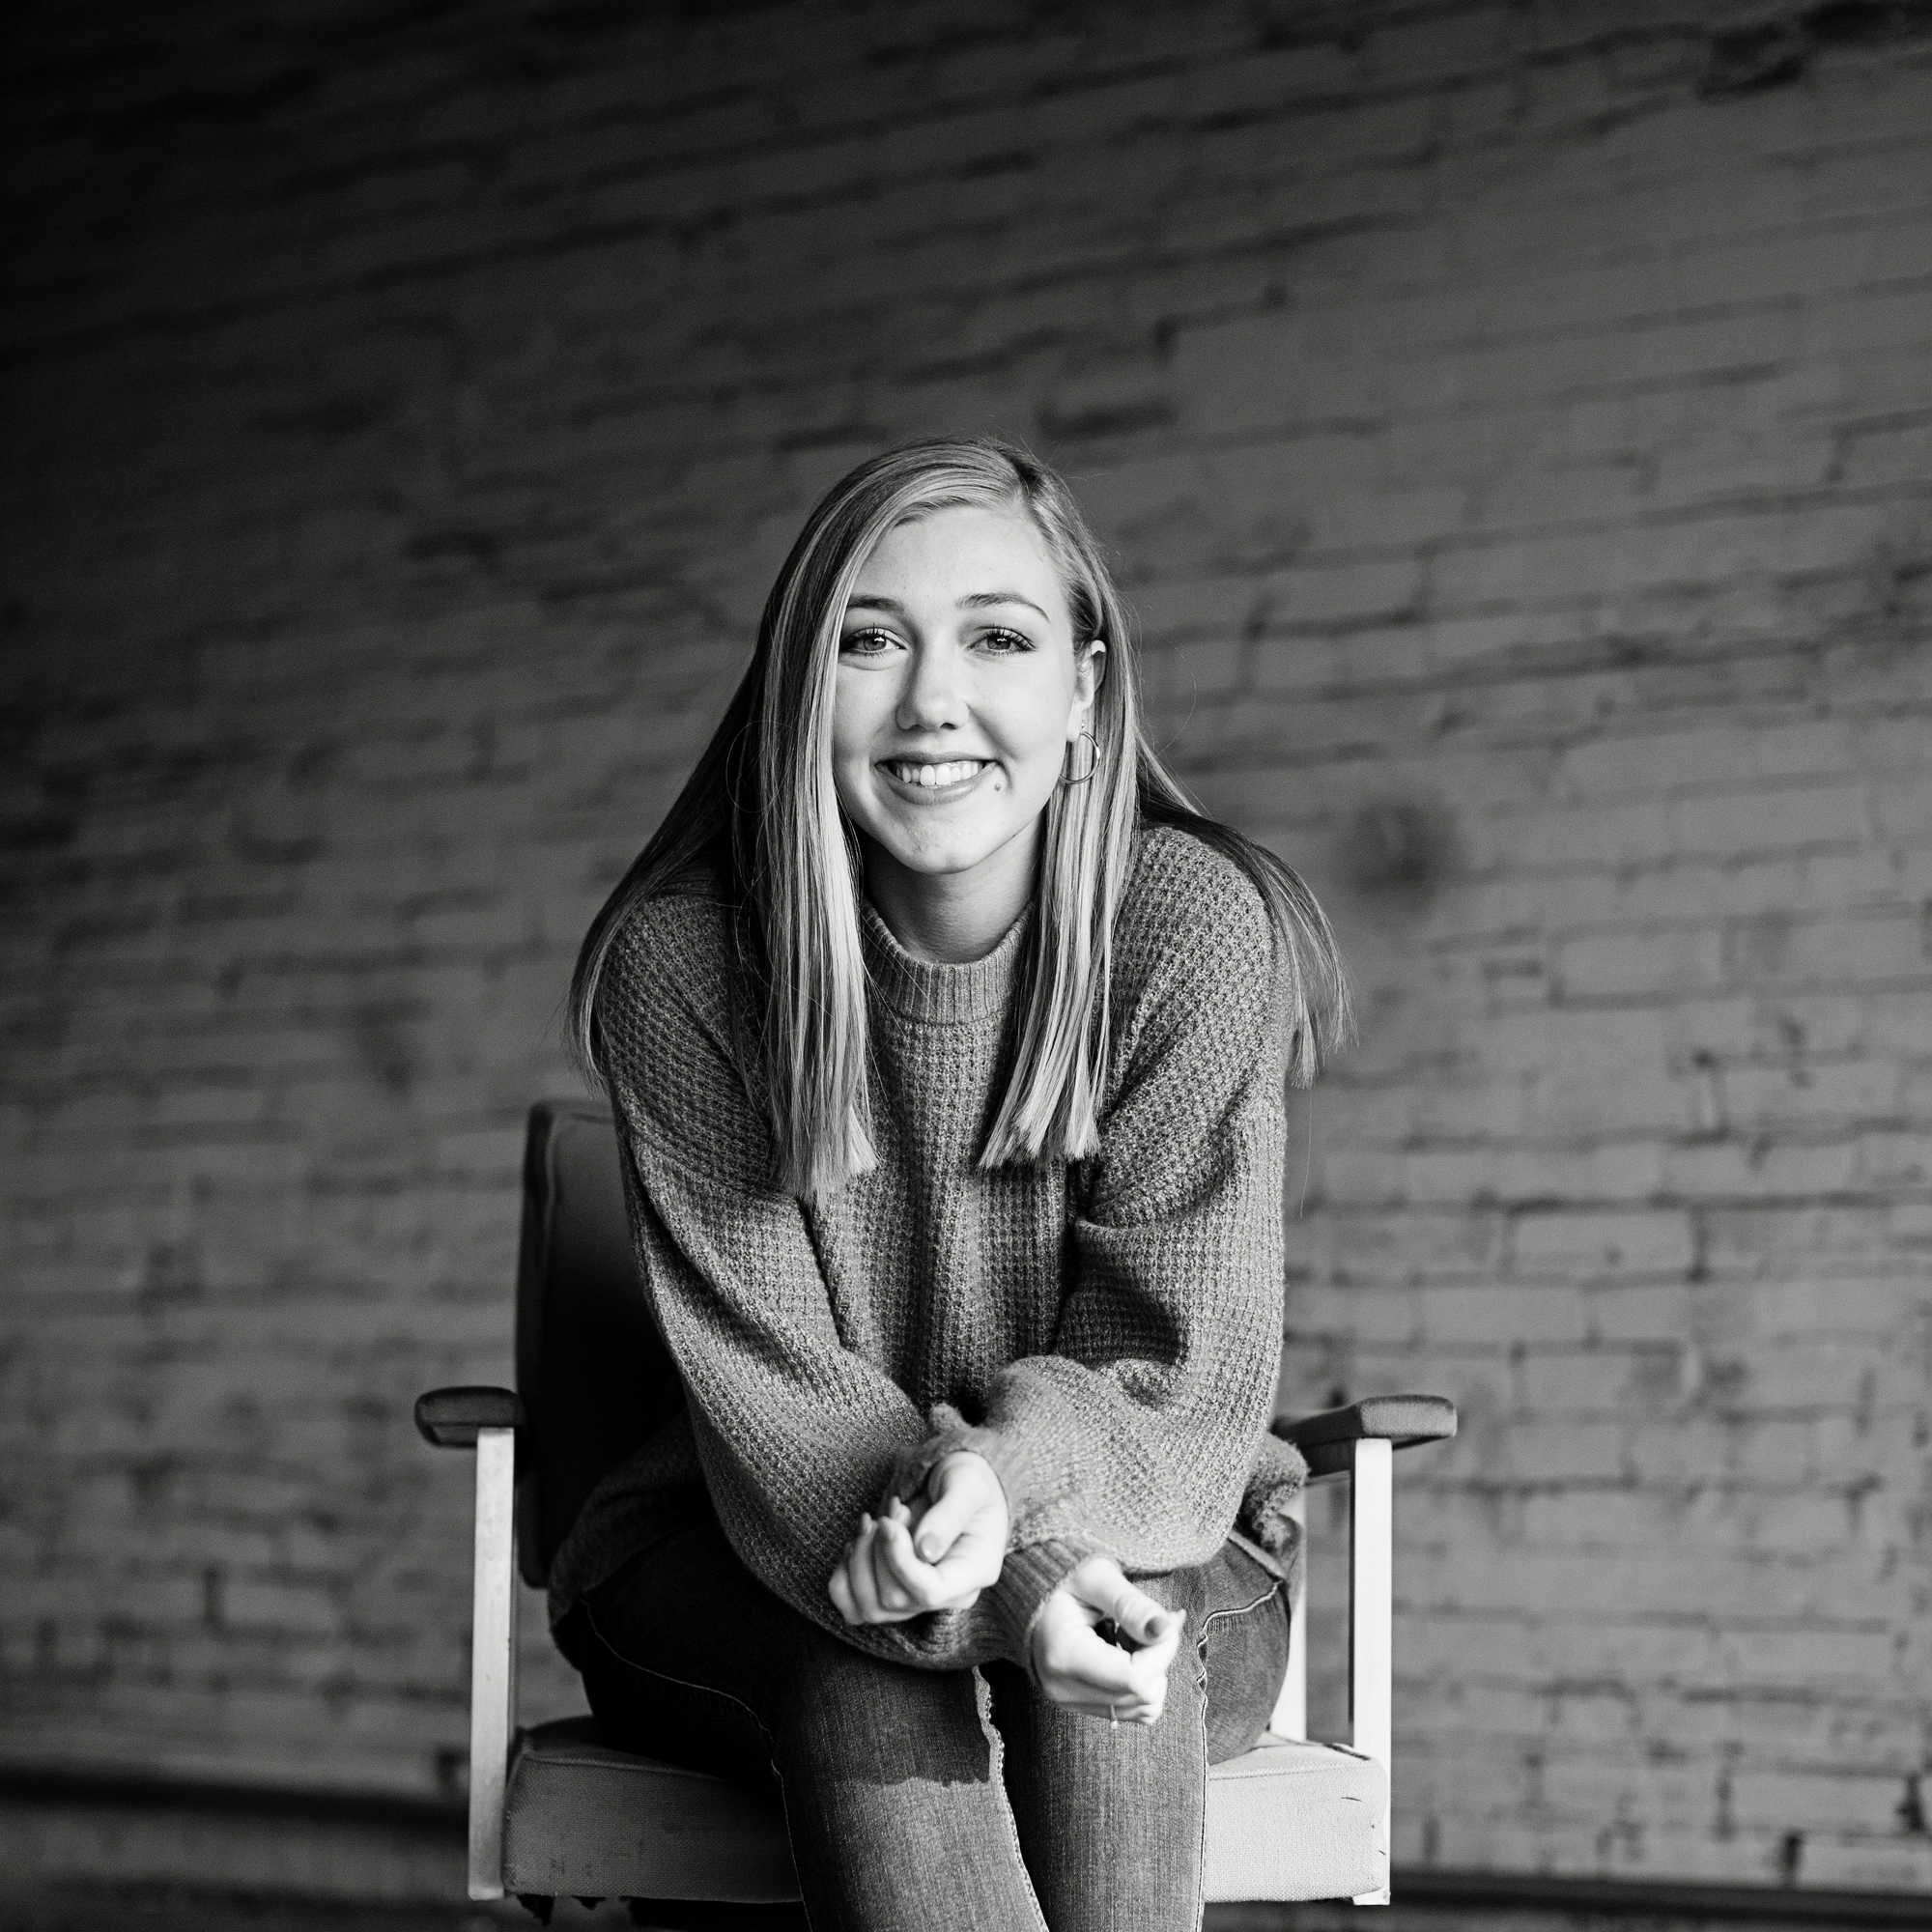 Seriously_Sabrina_Photography_Lexington_Kentucky_High_School_Senior_Camryn_McManis_4.jpg